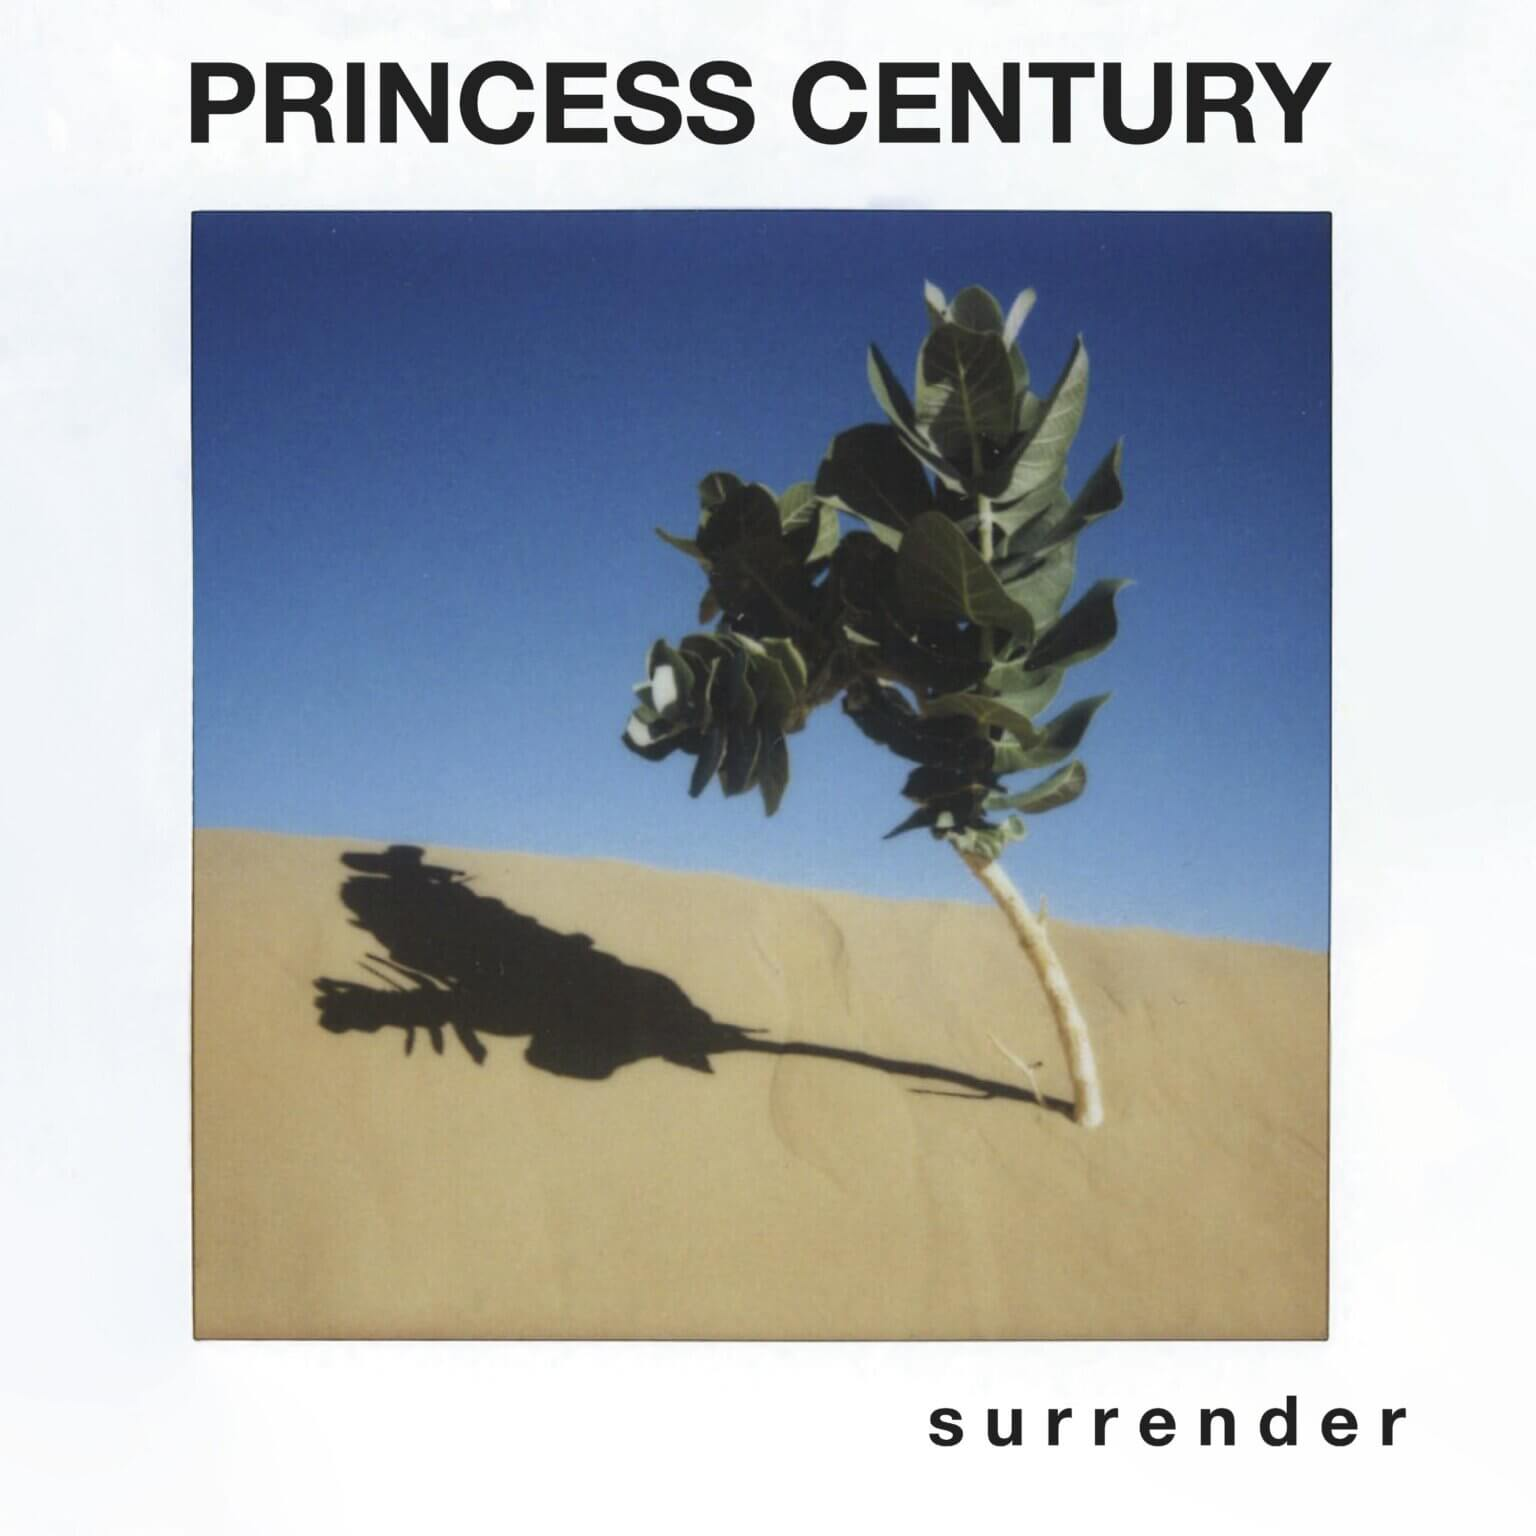 """PRINCESS CENTURY releases """"Stupid Things"""" video"""